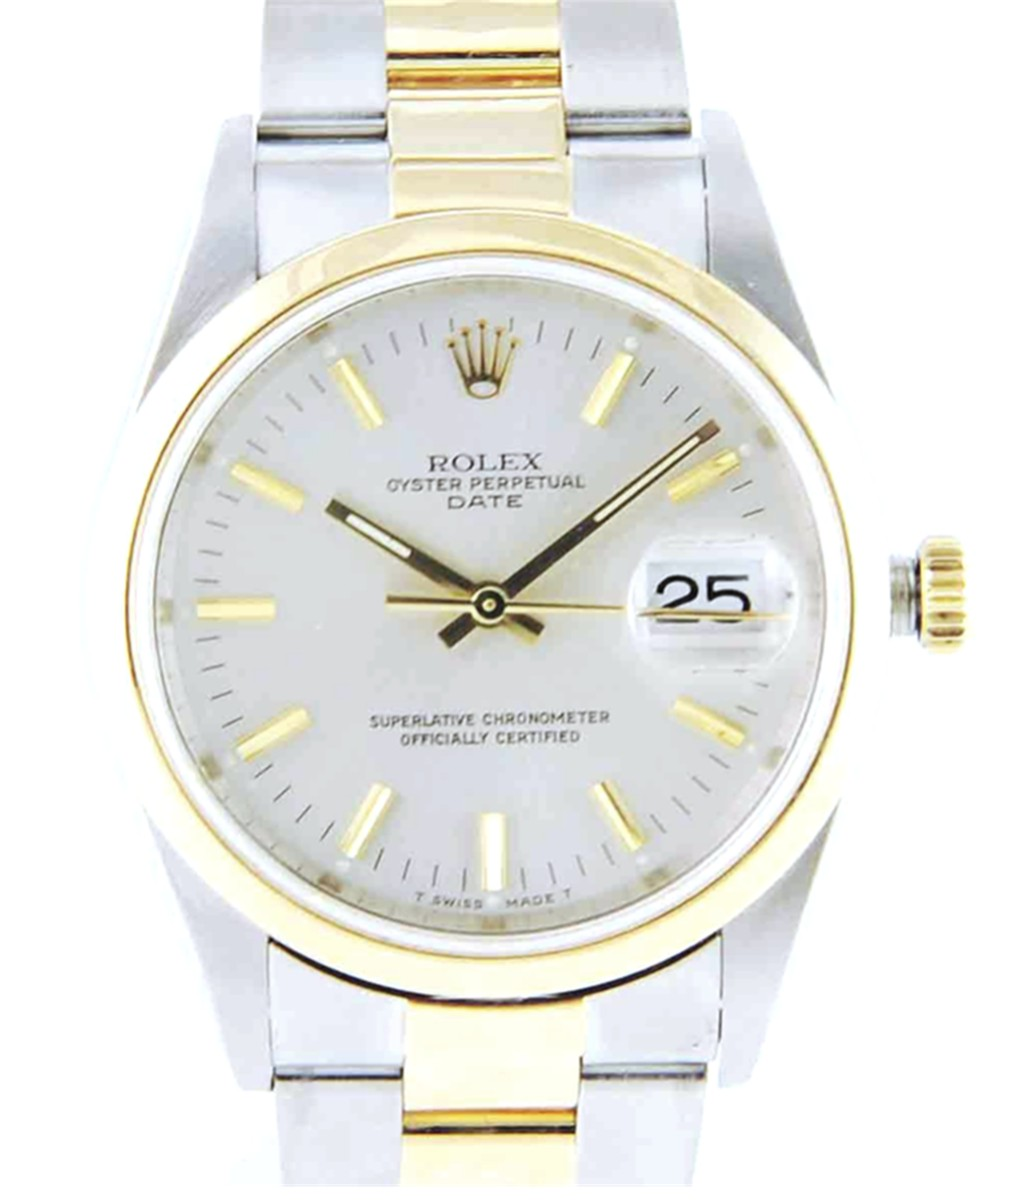 Rolex 34mm Date watch Model# 15203